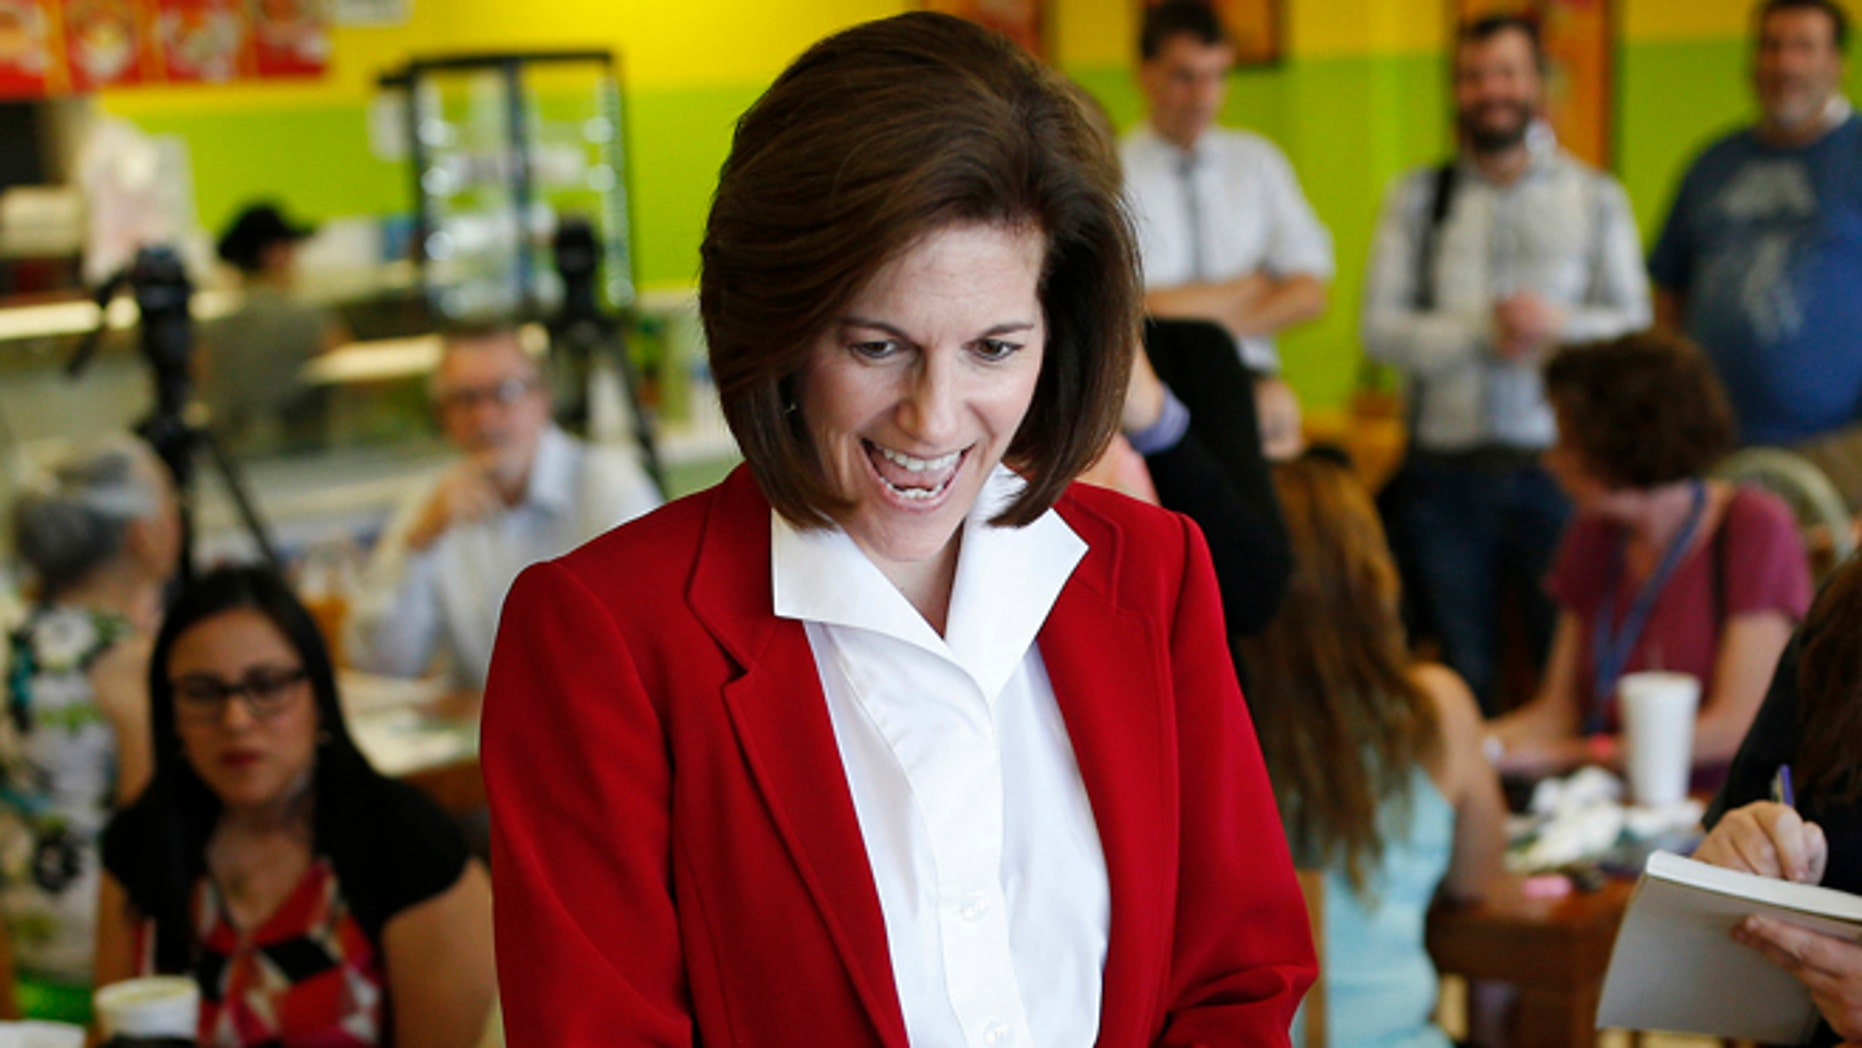 Senate candidate Catherine Cortez Masto at a campaign event at a restaurant in Las Vegas in May 2016.